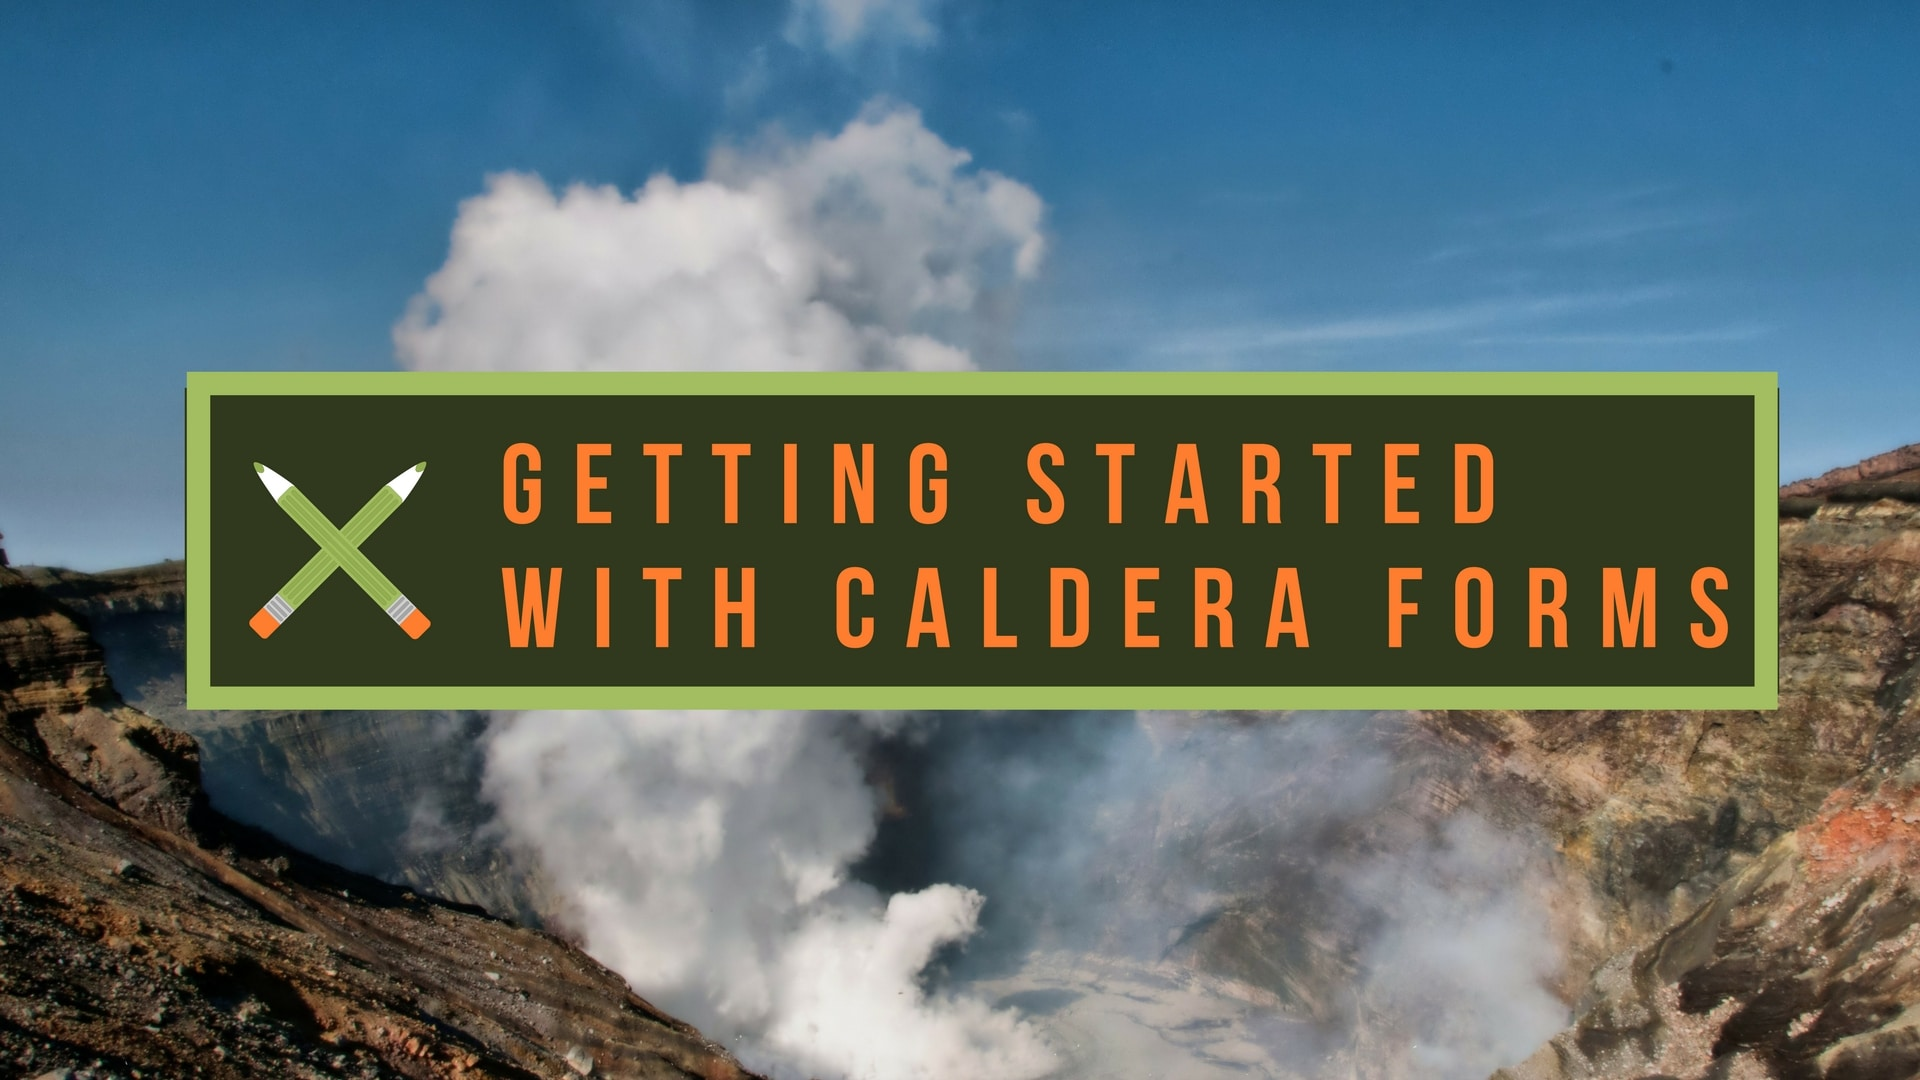 Smoke rising from a crater. With text - Getting started with Caldera Forms